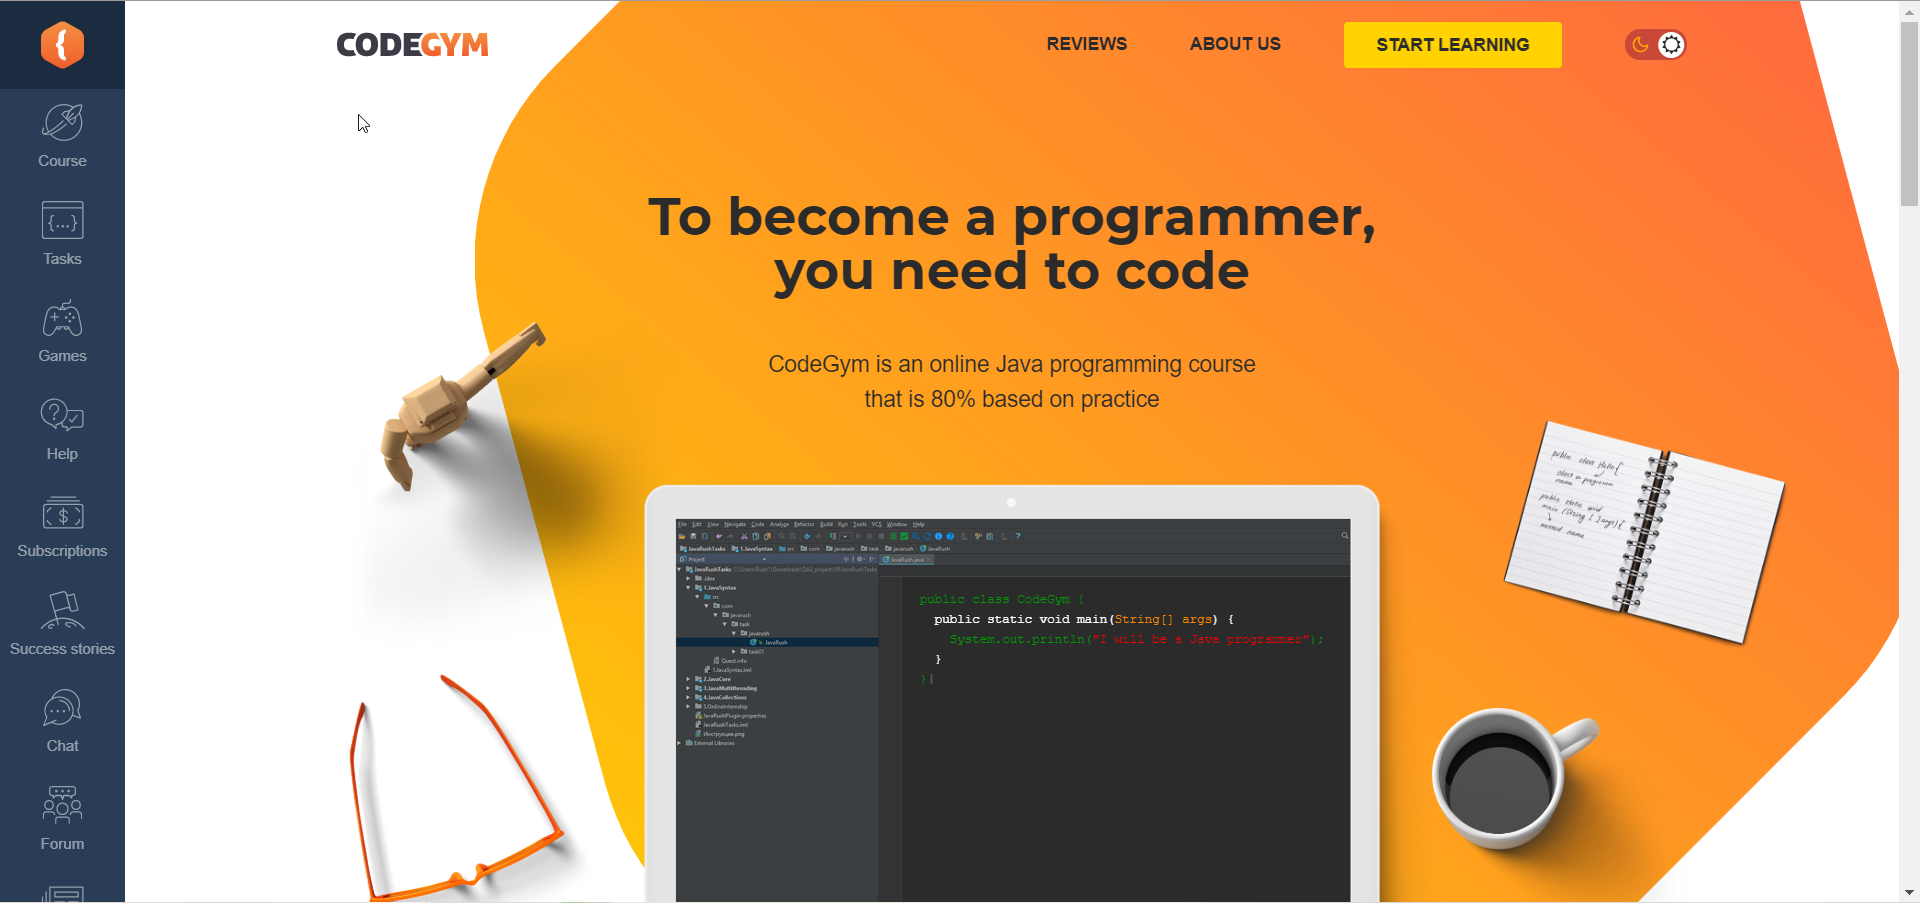 Learn how to code with CodeGym - Home Screen